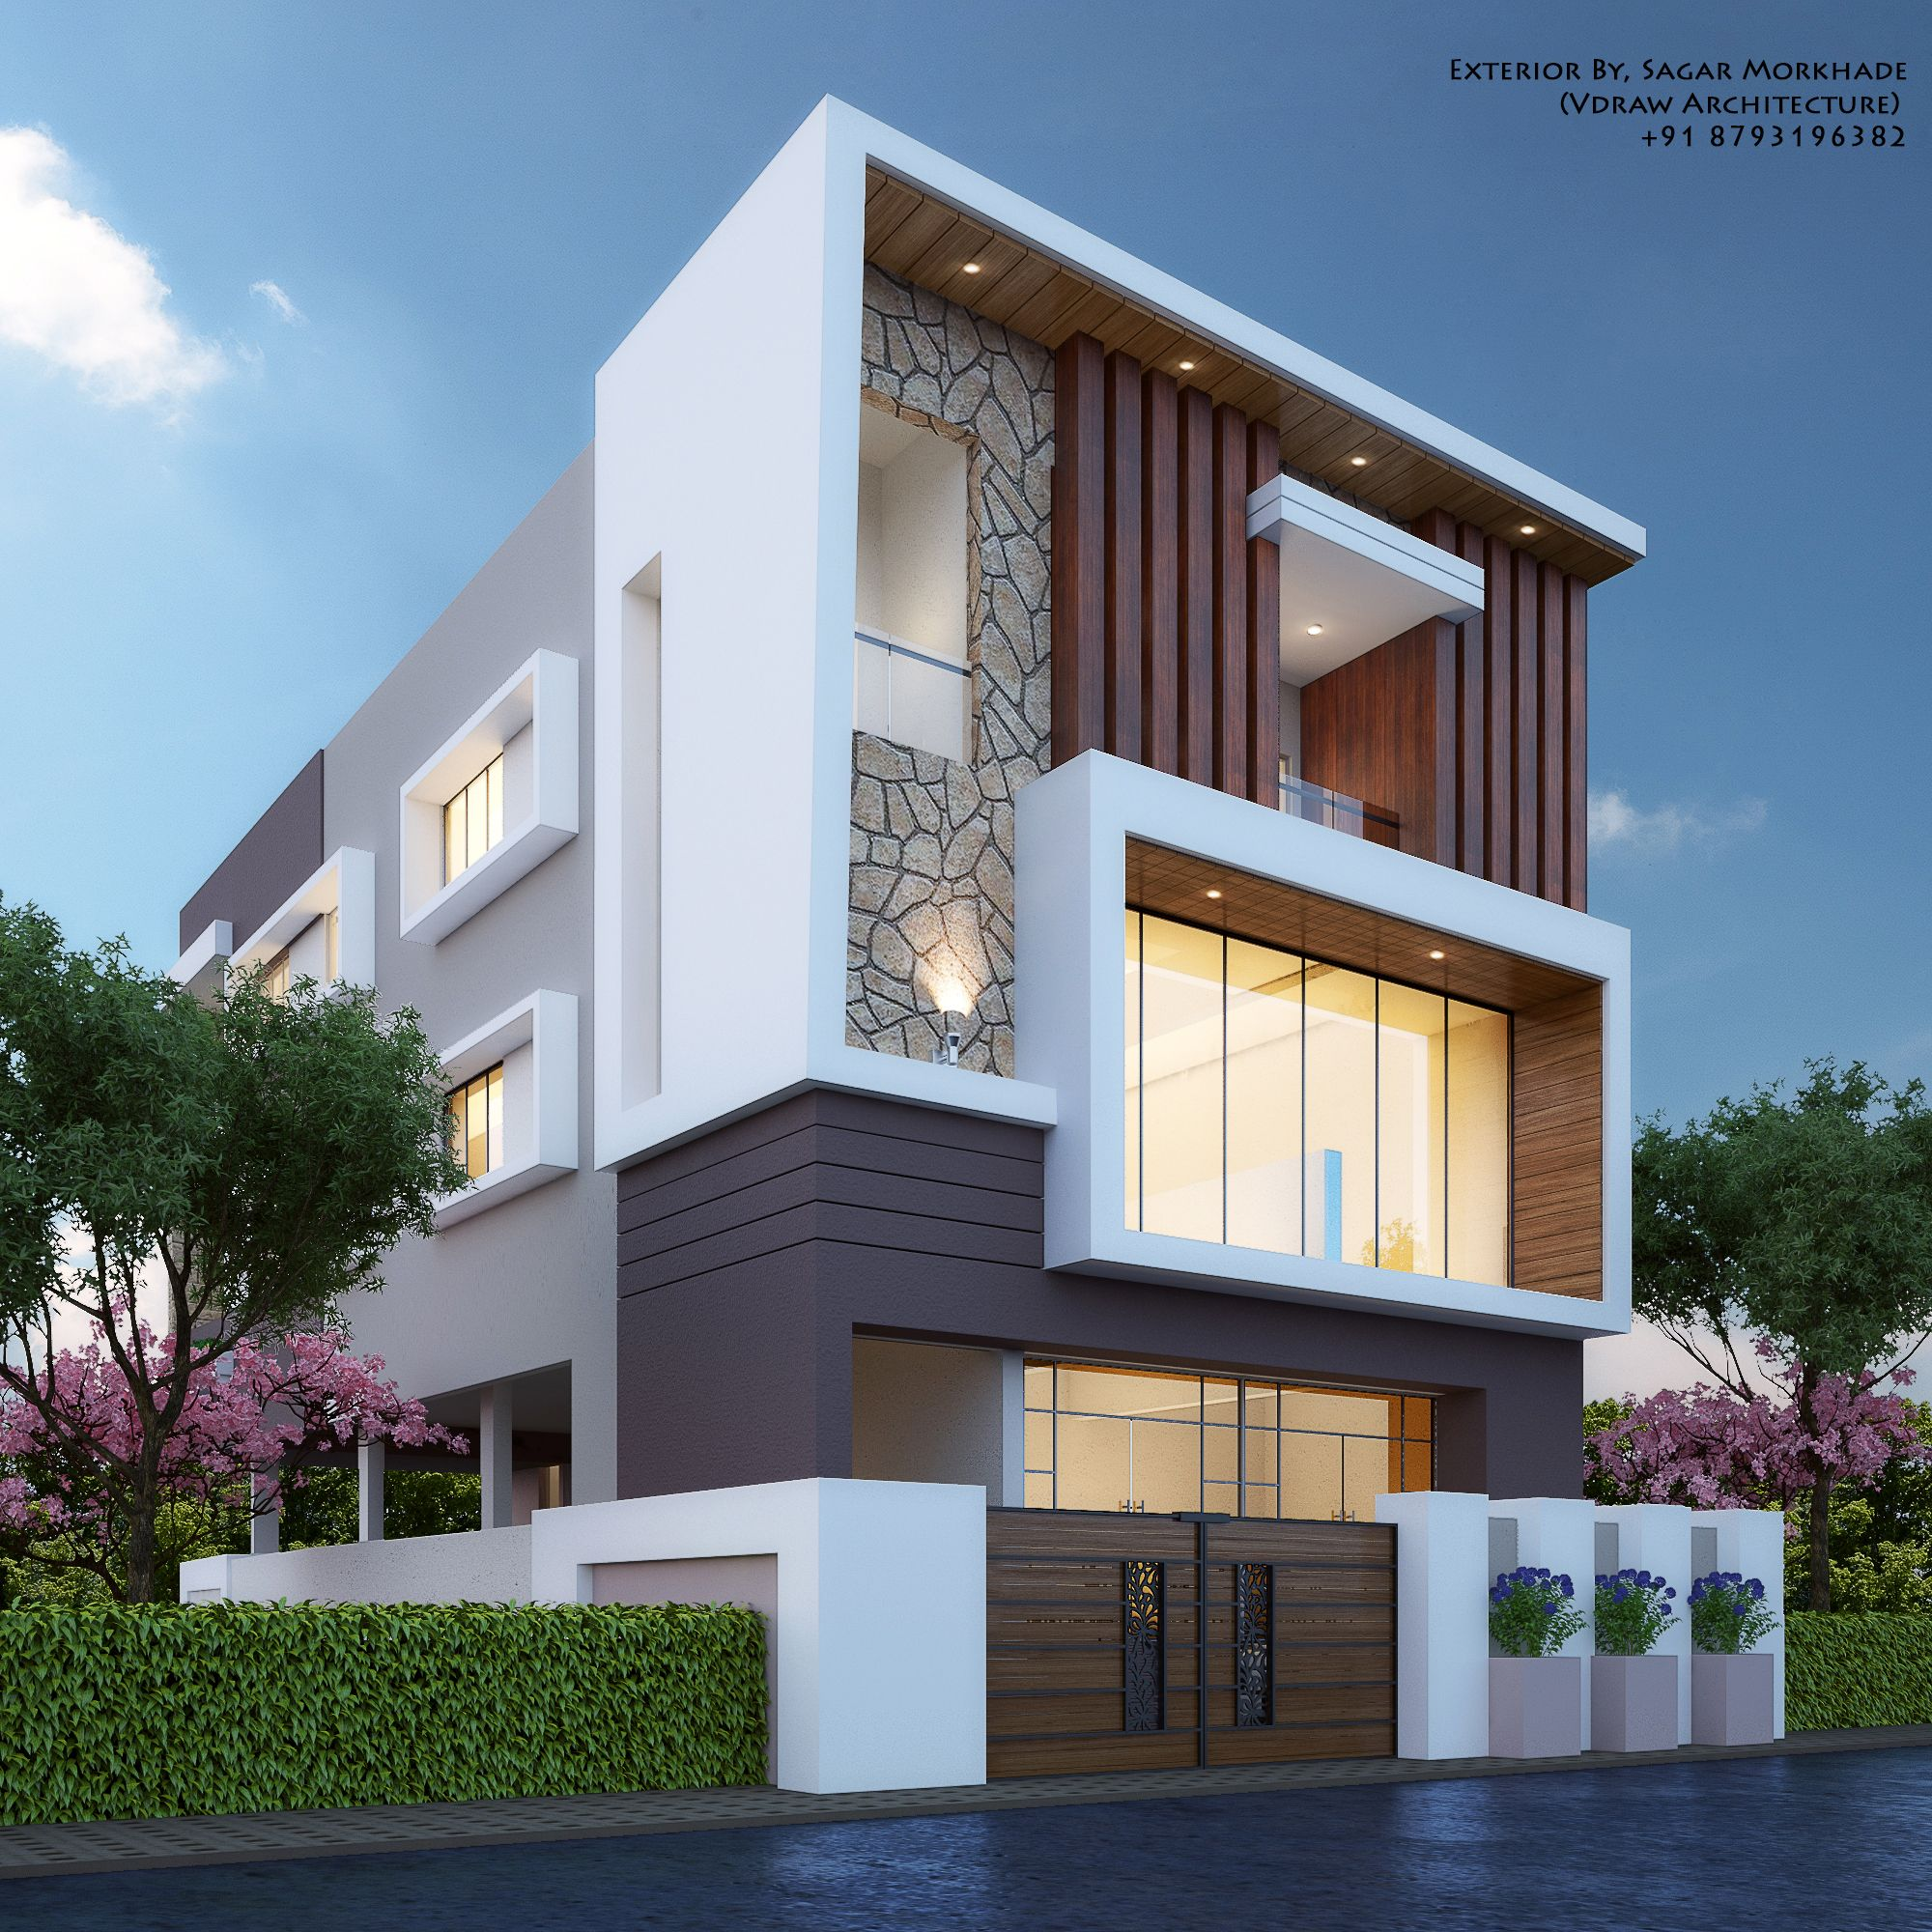 Contemporary Home Exterior Design Ideas: Modern House Bungalow Exterior By, Sagar Morkhade (Vdraw